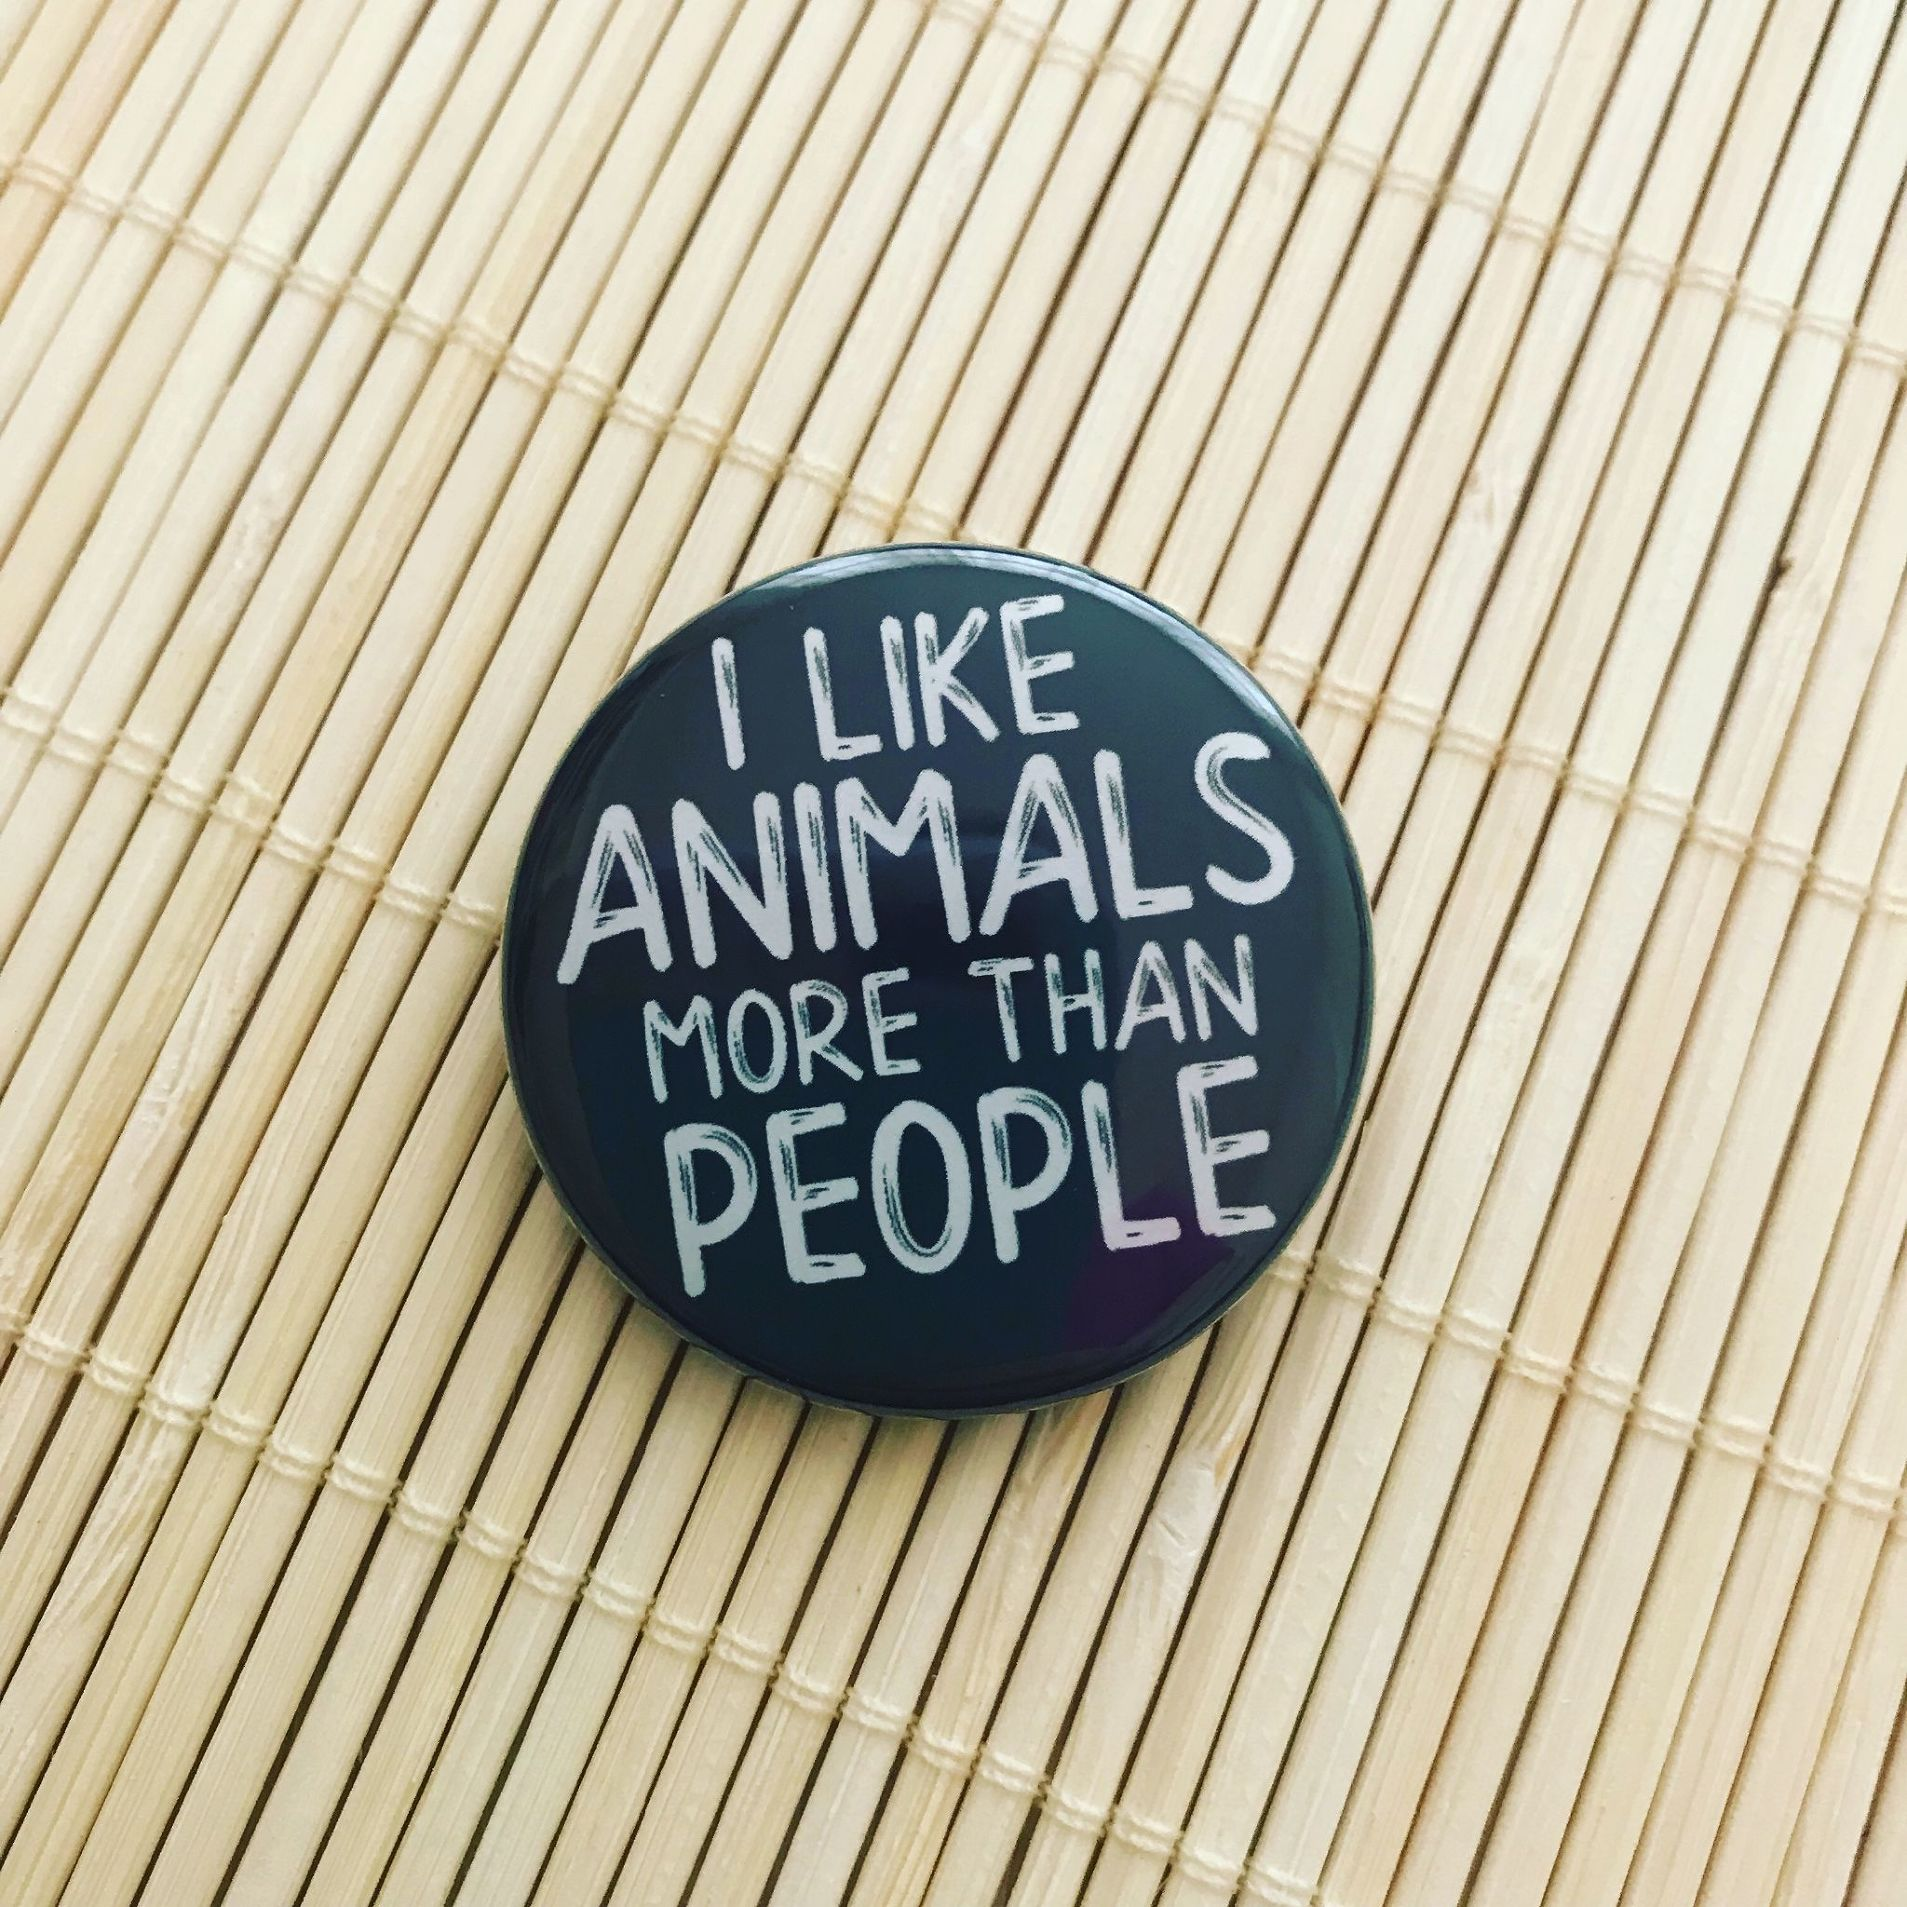 I like animals more than people round badge